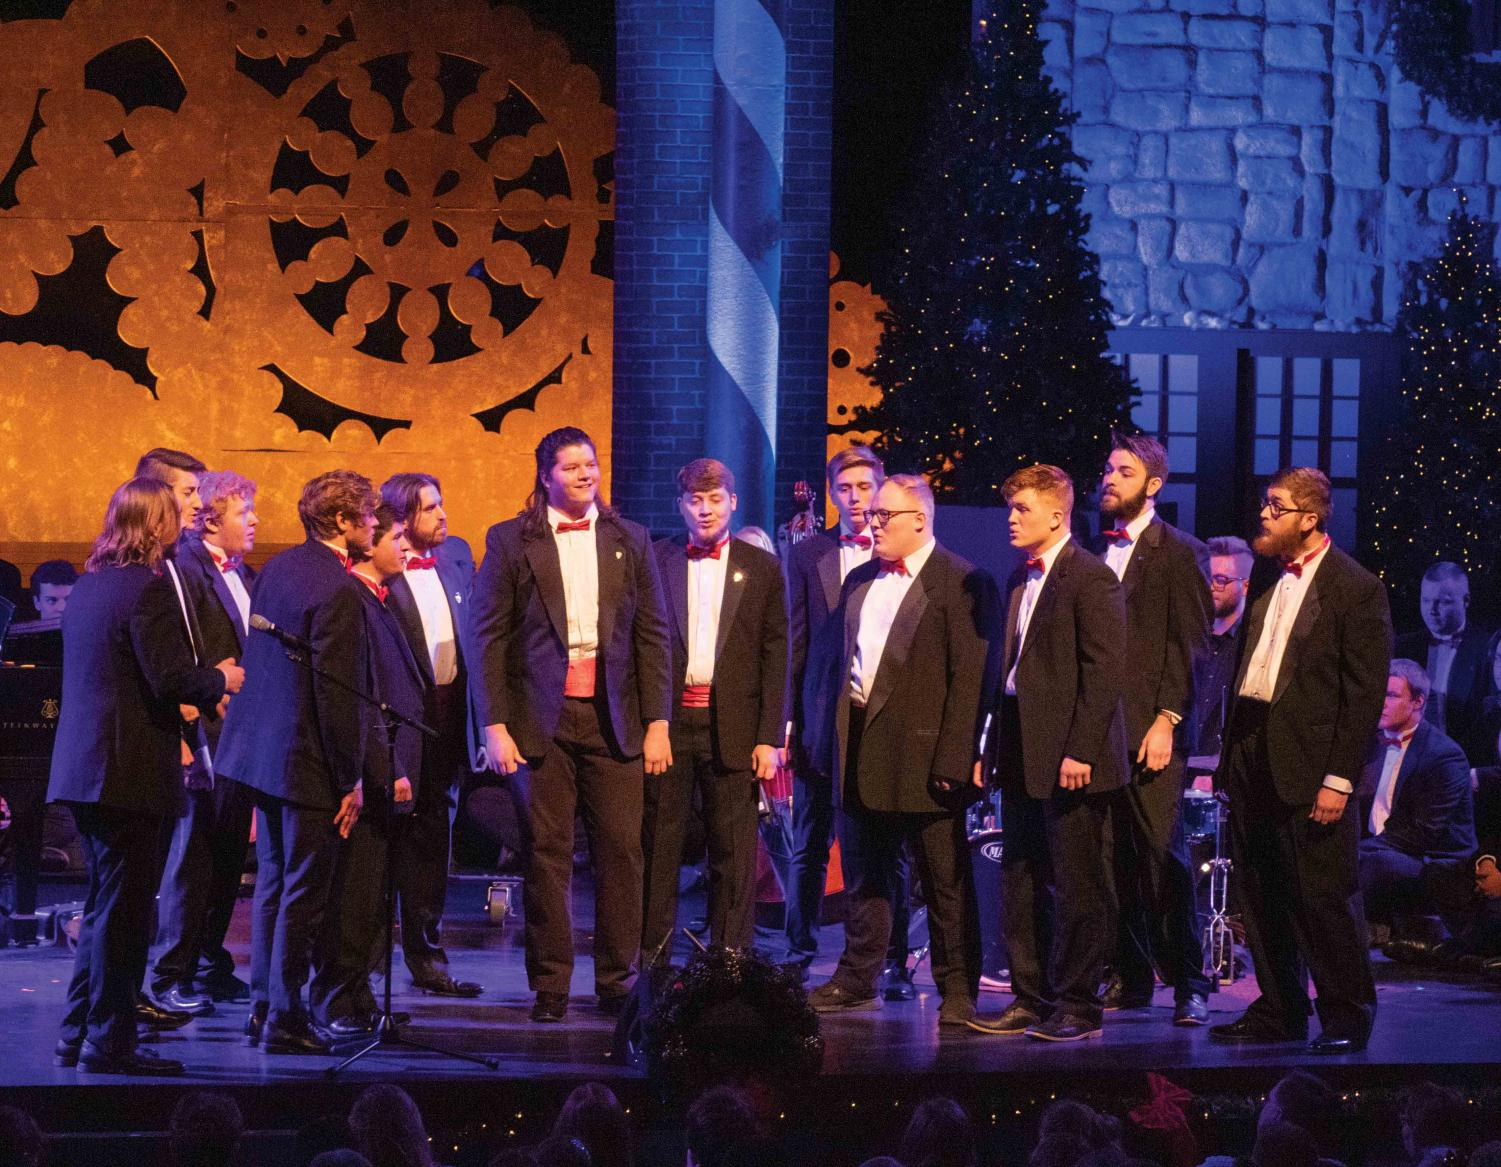 """Cecilia Mitchell reviews """"SingPins A Capella,"""" the first release from UNI's auditioned a capella ensemble."""